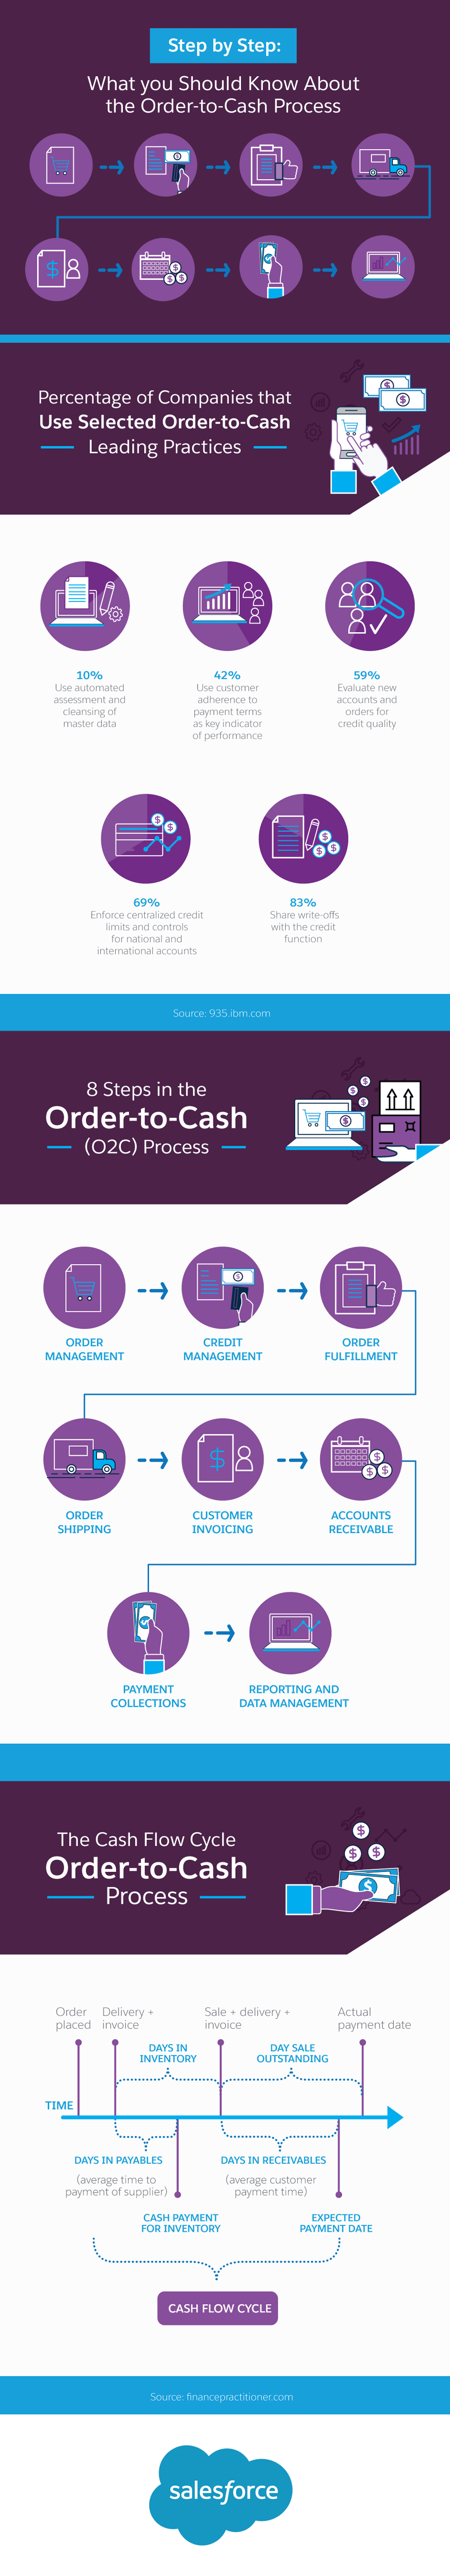 What you Should Know About the Order-to-Cash Process - Salesforce com